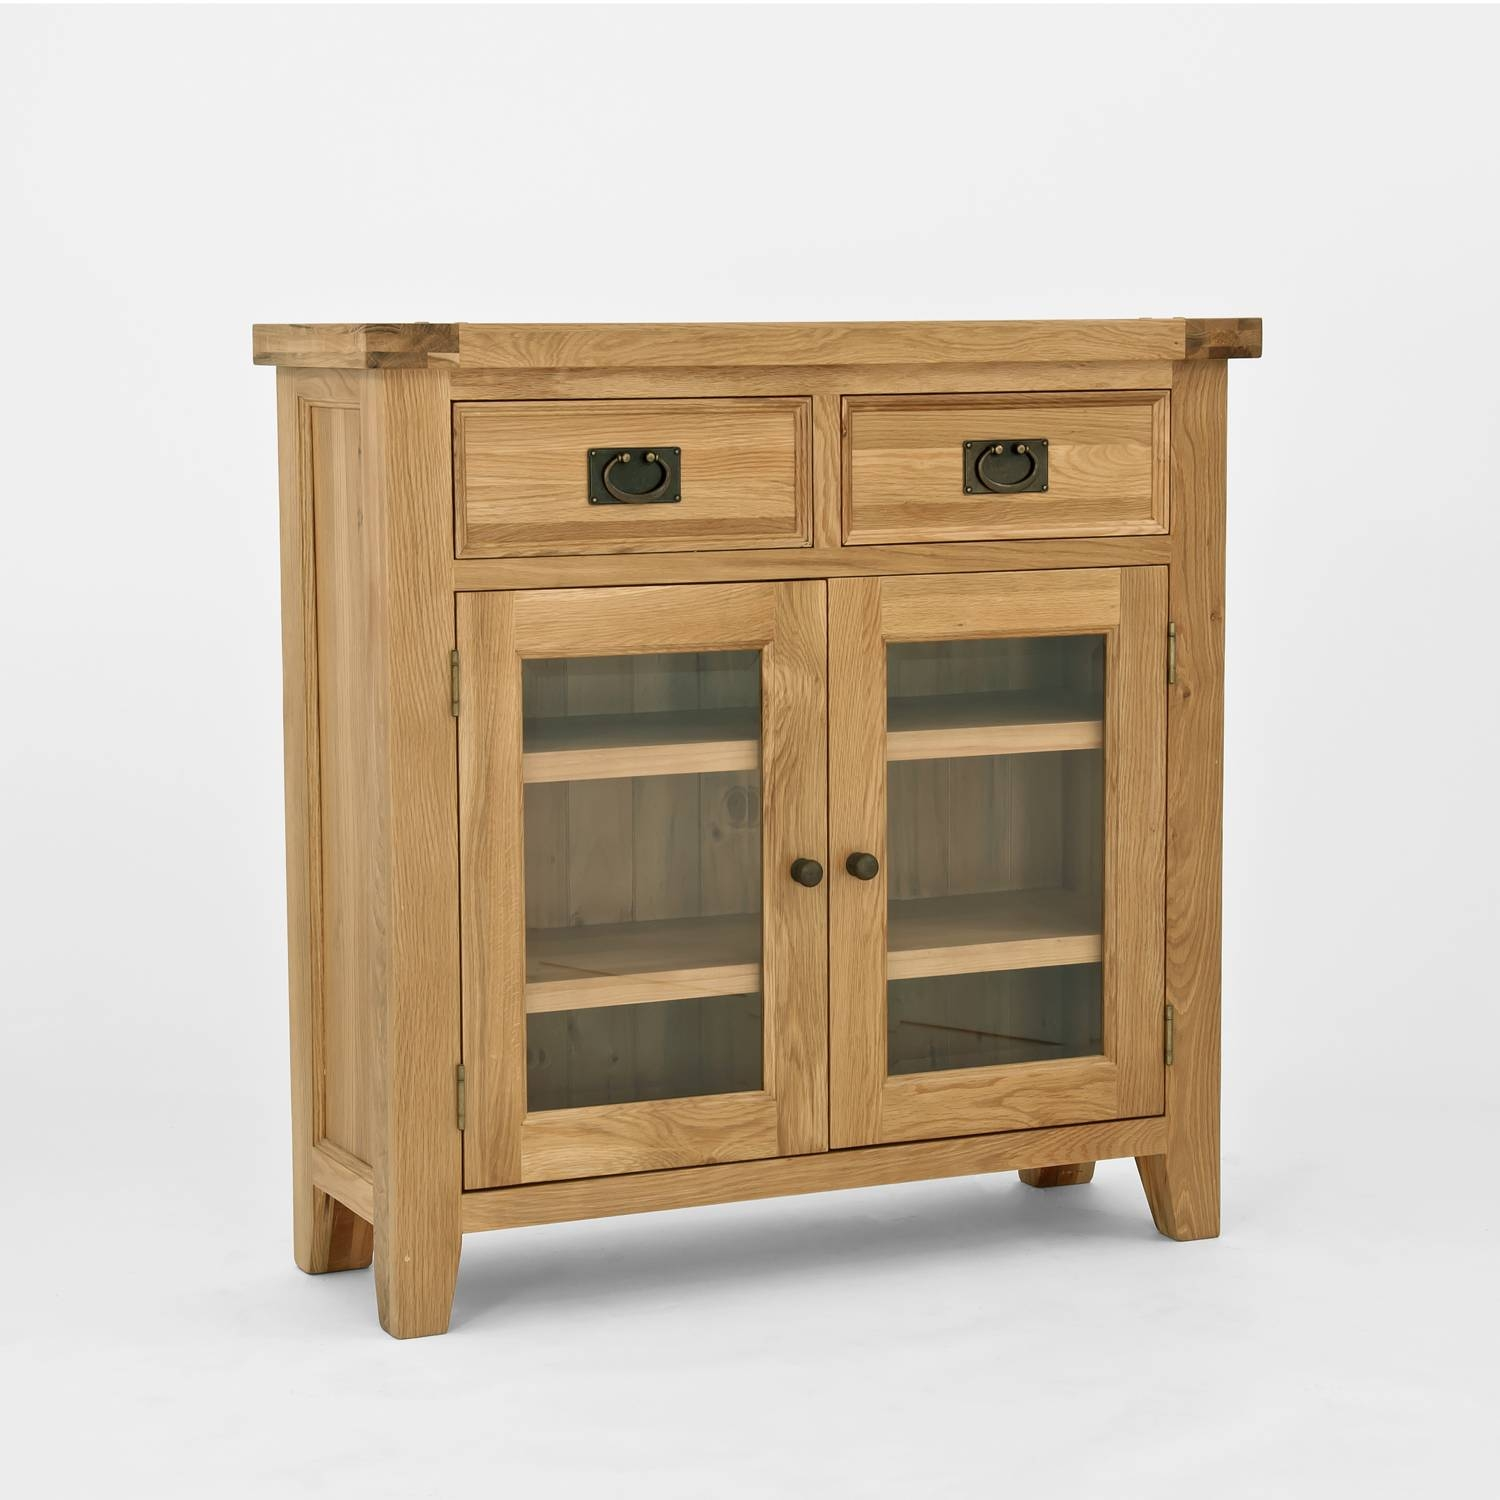 Chiltern Oak Small Sideboard/bookcase With Glass Doors With Regard To Current Small Oak Sideboards (#5 of 15)